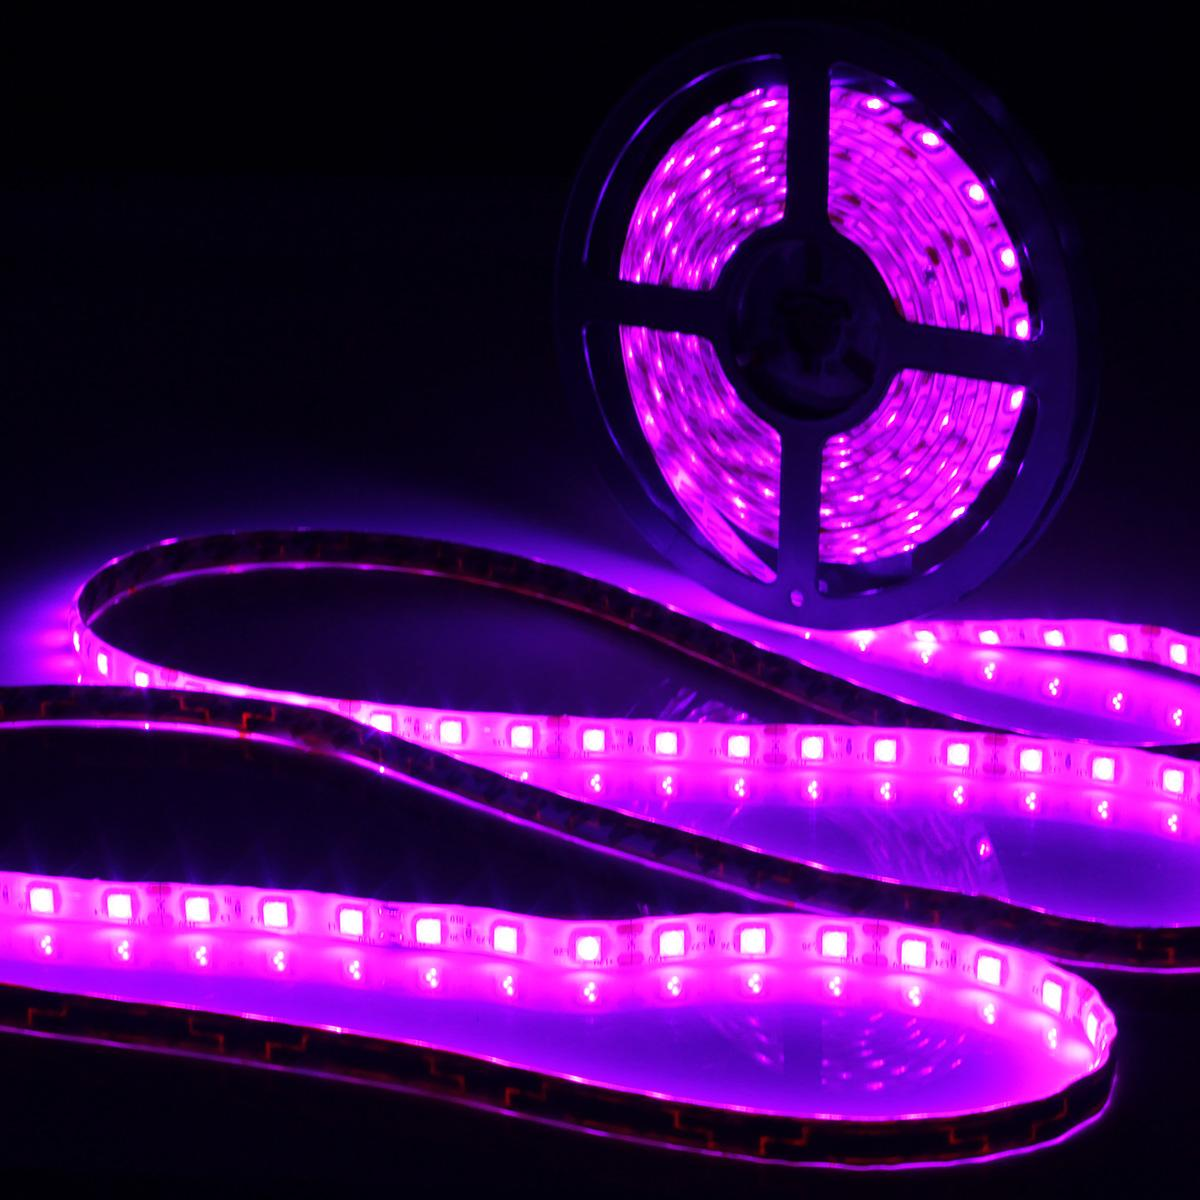 0.5/1/2/3/4/5M Waterproof IP65 UV Lamp Ultraviolet Purple Led Strip Light 12V DC 5050 SMD Black LED Lamp 395-405nm Strip Light